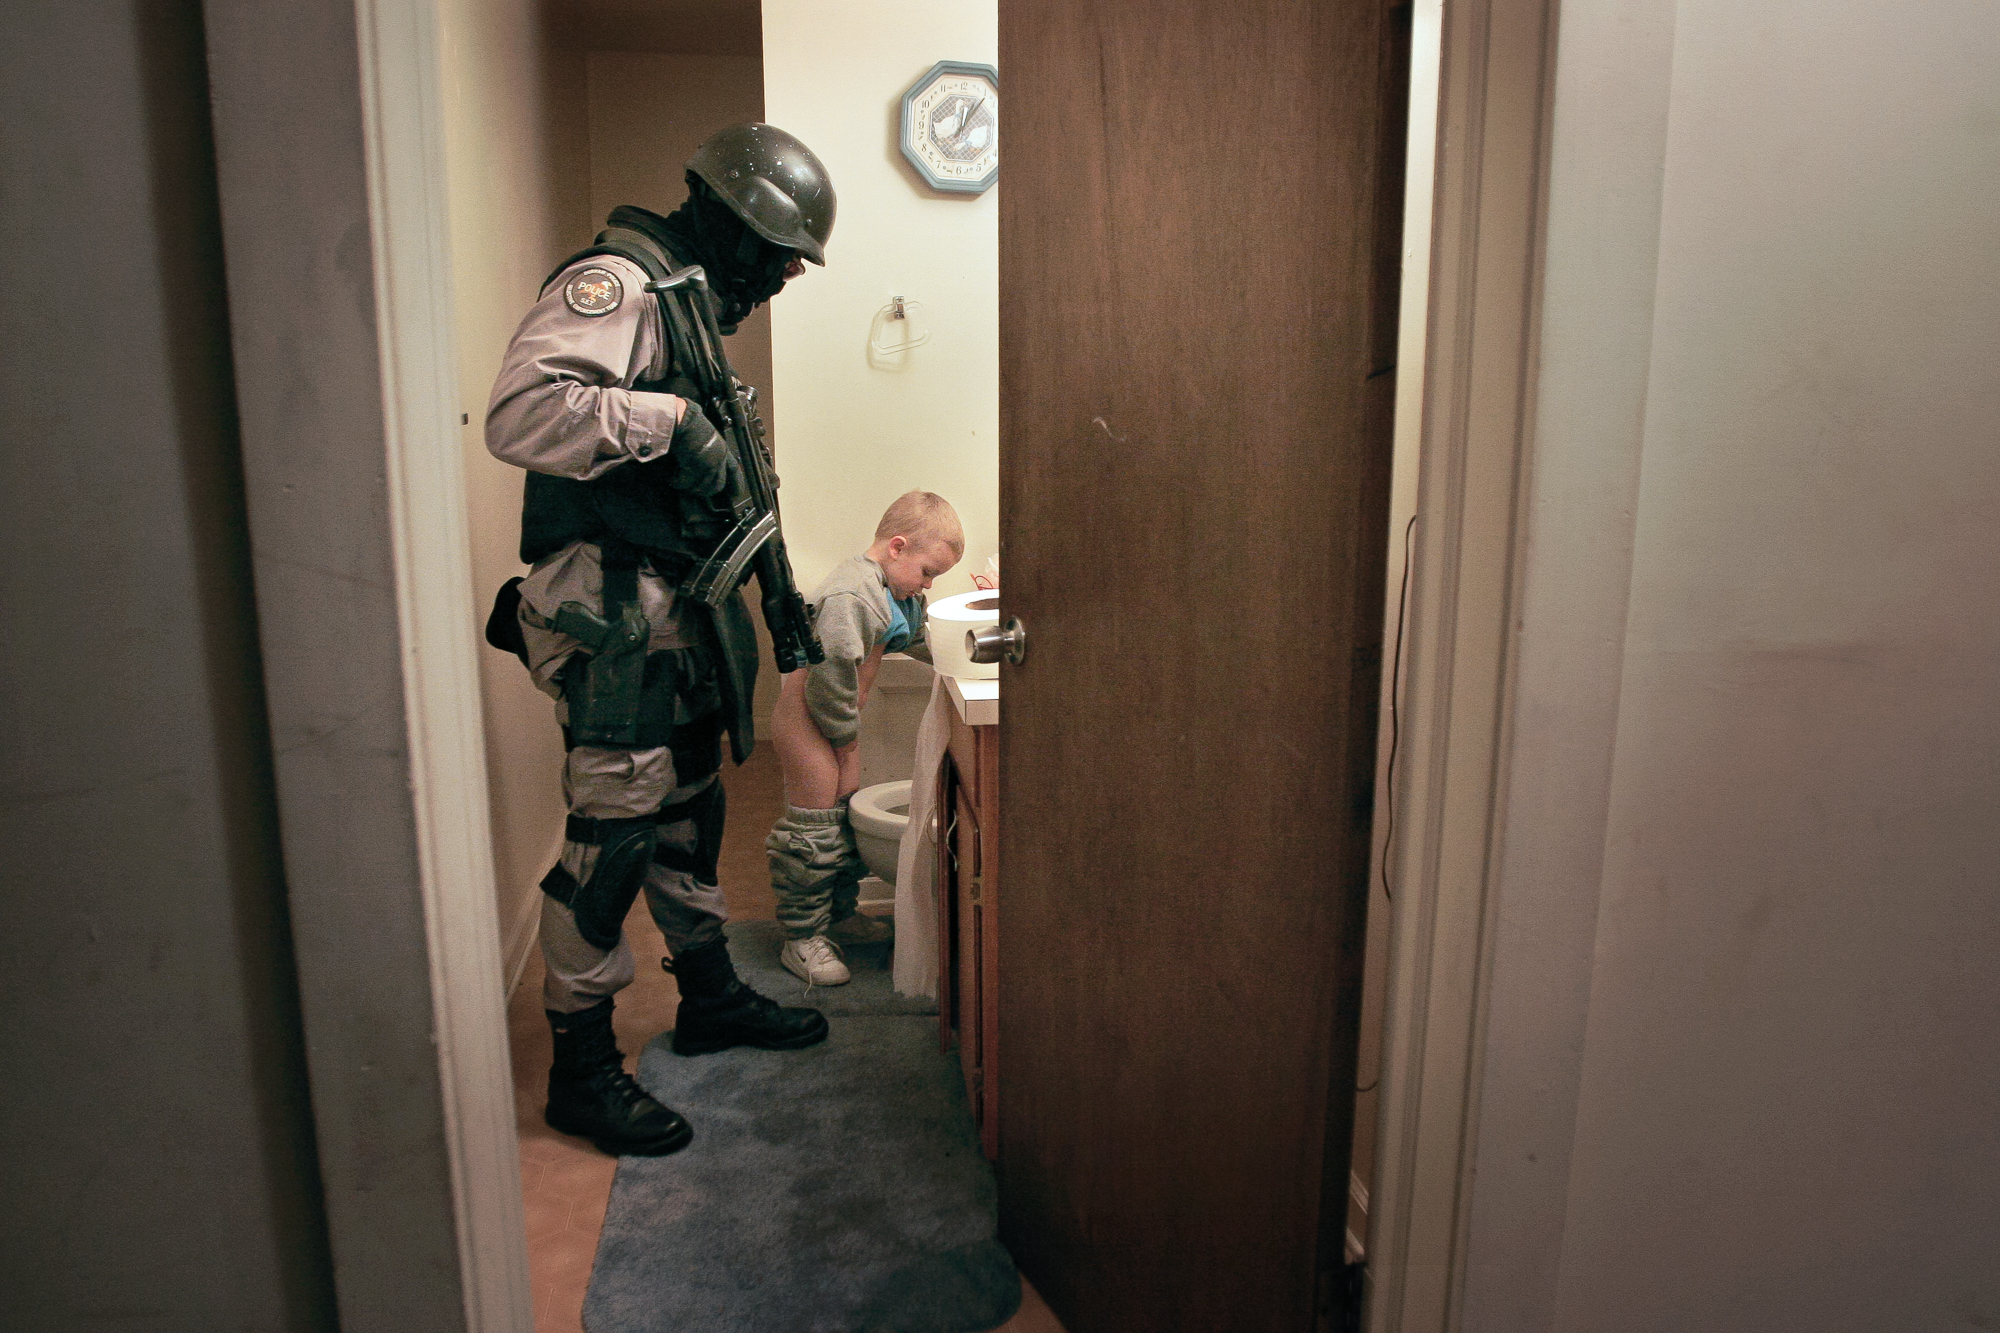 After a drug raid in 2005, a member of the Durham Police Department Selective Enforcement Team escorts a child to the bathroom. His mother was temporarily detained during the search of the home and couldn't tend to him. Through raids, officers hope to recover illegal or stolen guns, and disrupt drug trafficking and gang activity. Some residents welcome the raids; others complain that they terrorize the neighborhood, and that police efforts should focus on solving murders and other violent crimes. Many SET officers have children, and none of them like it when kids are caught in the middle of drug raids.